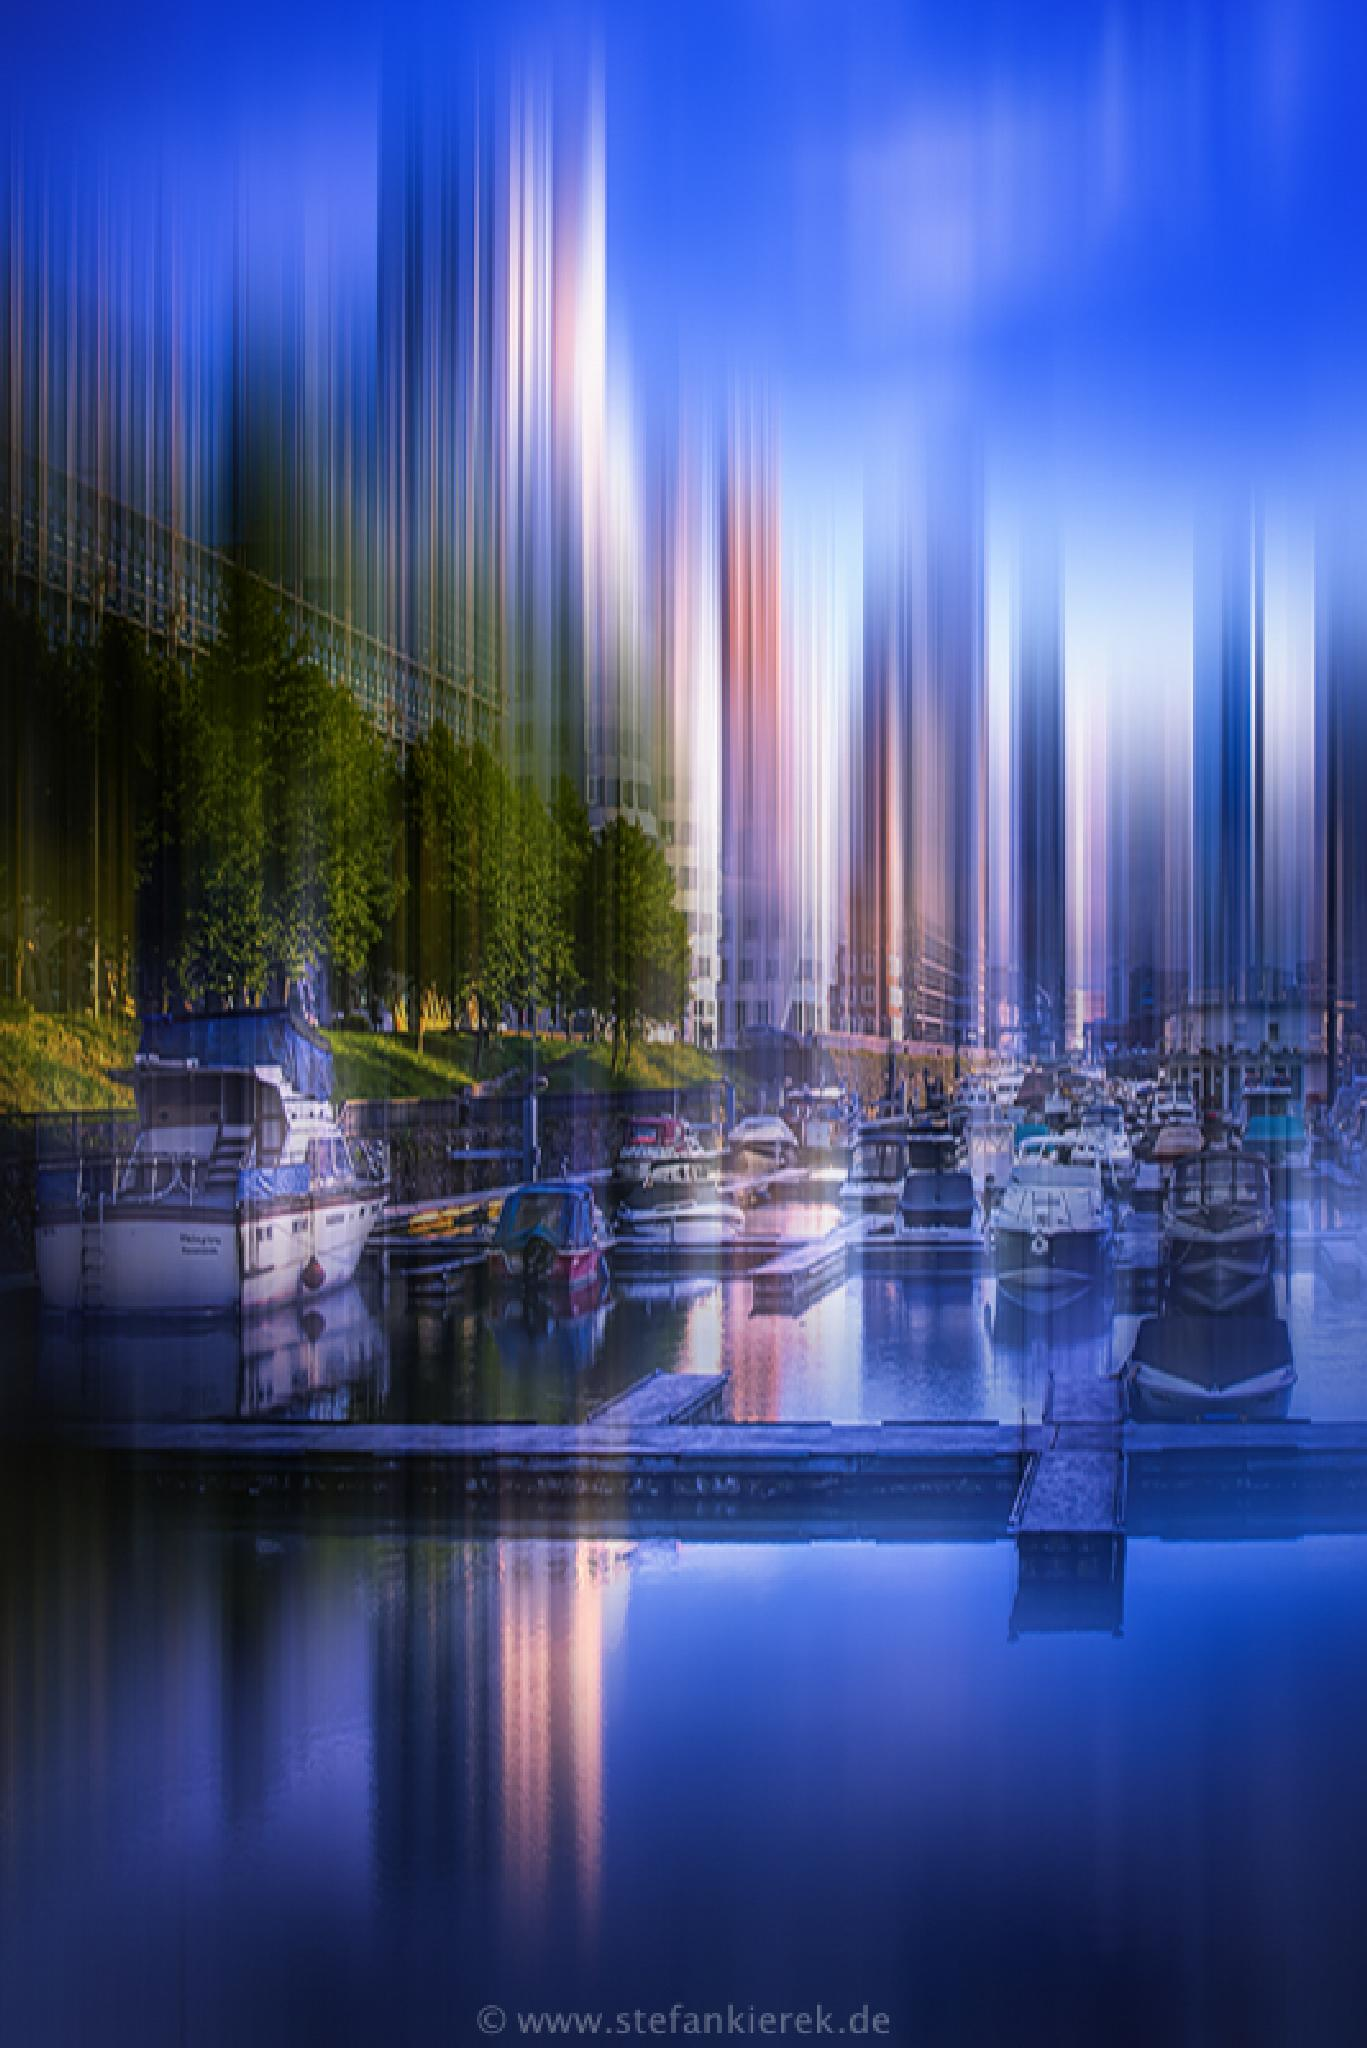 Blue Dusseldorf! by Stefan K.